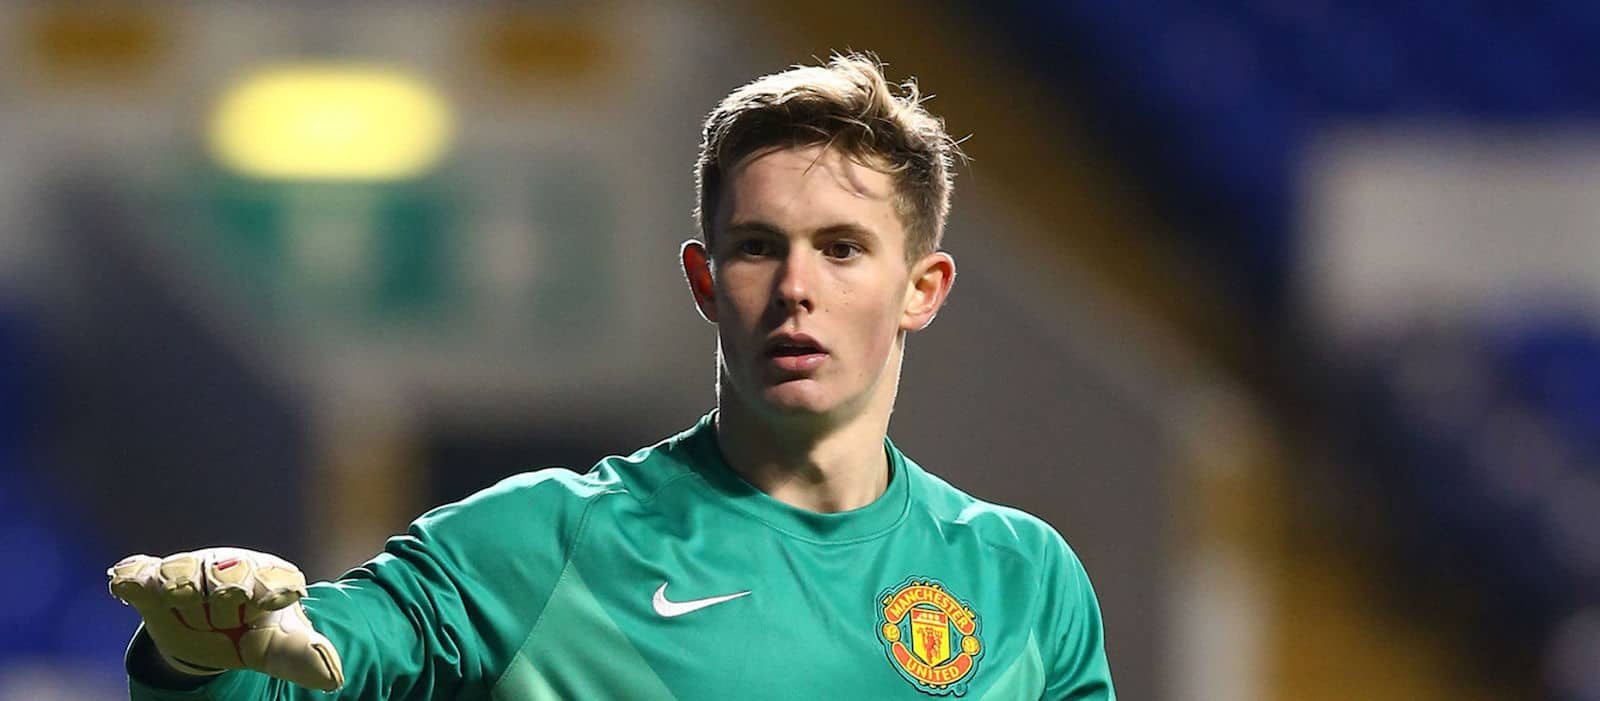 Dean Henderson valued at £30 million, but should Man United sell him?